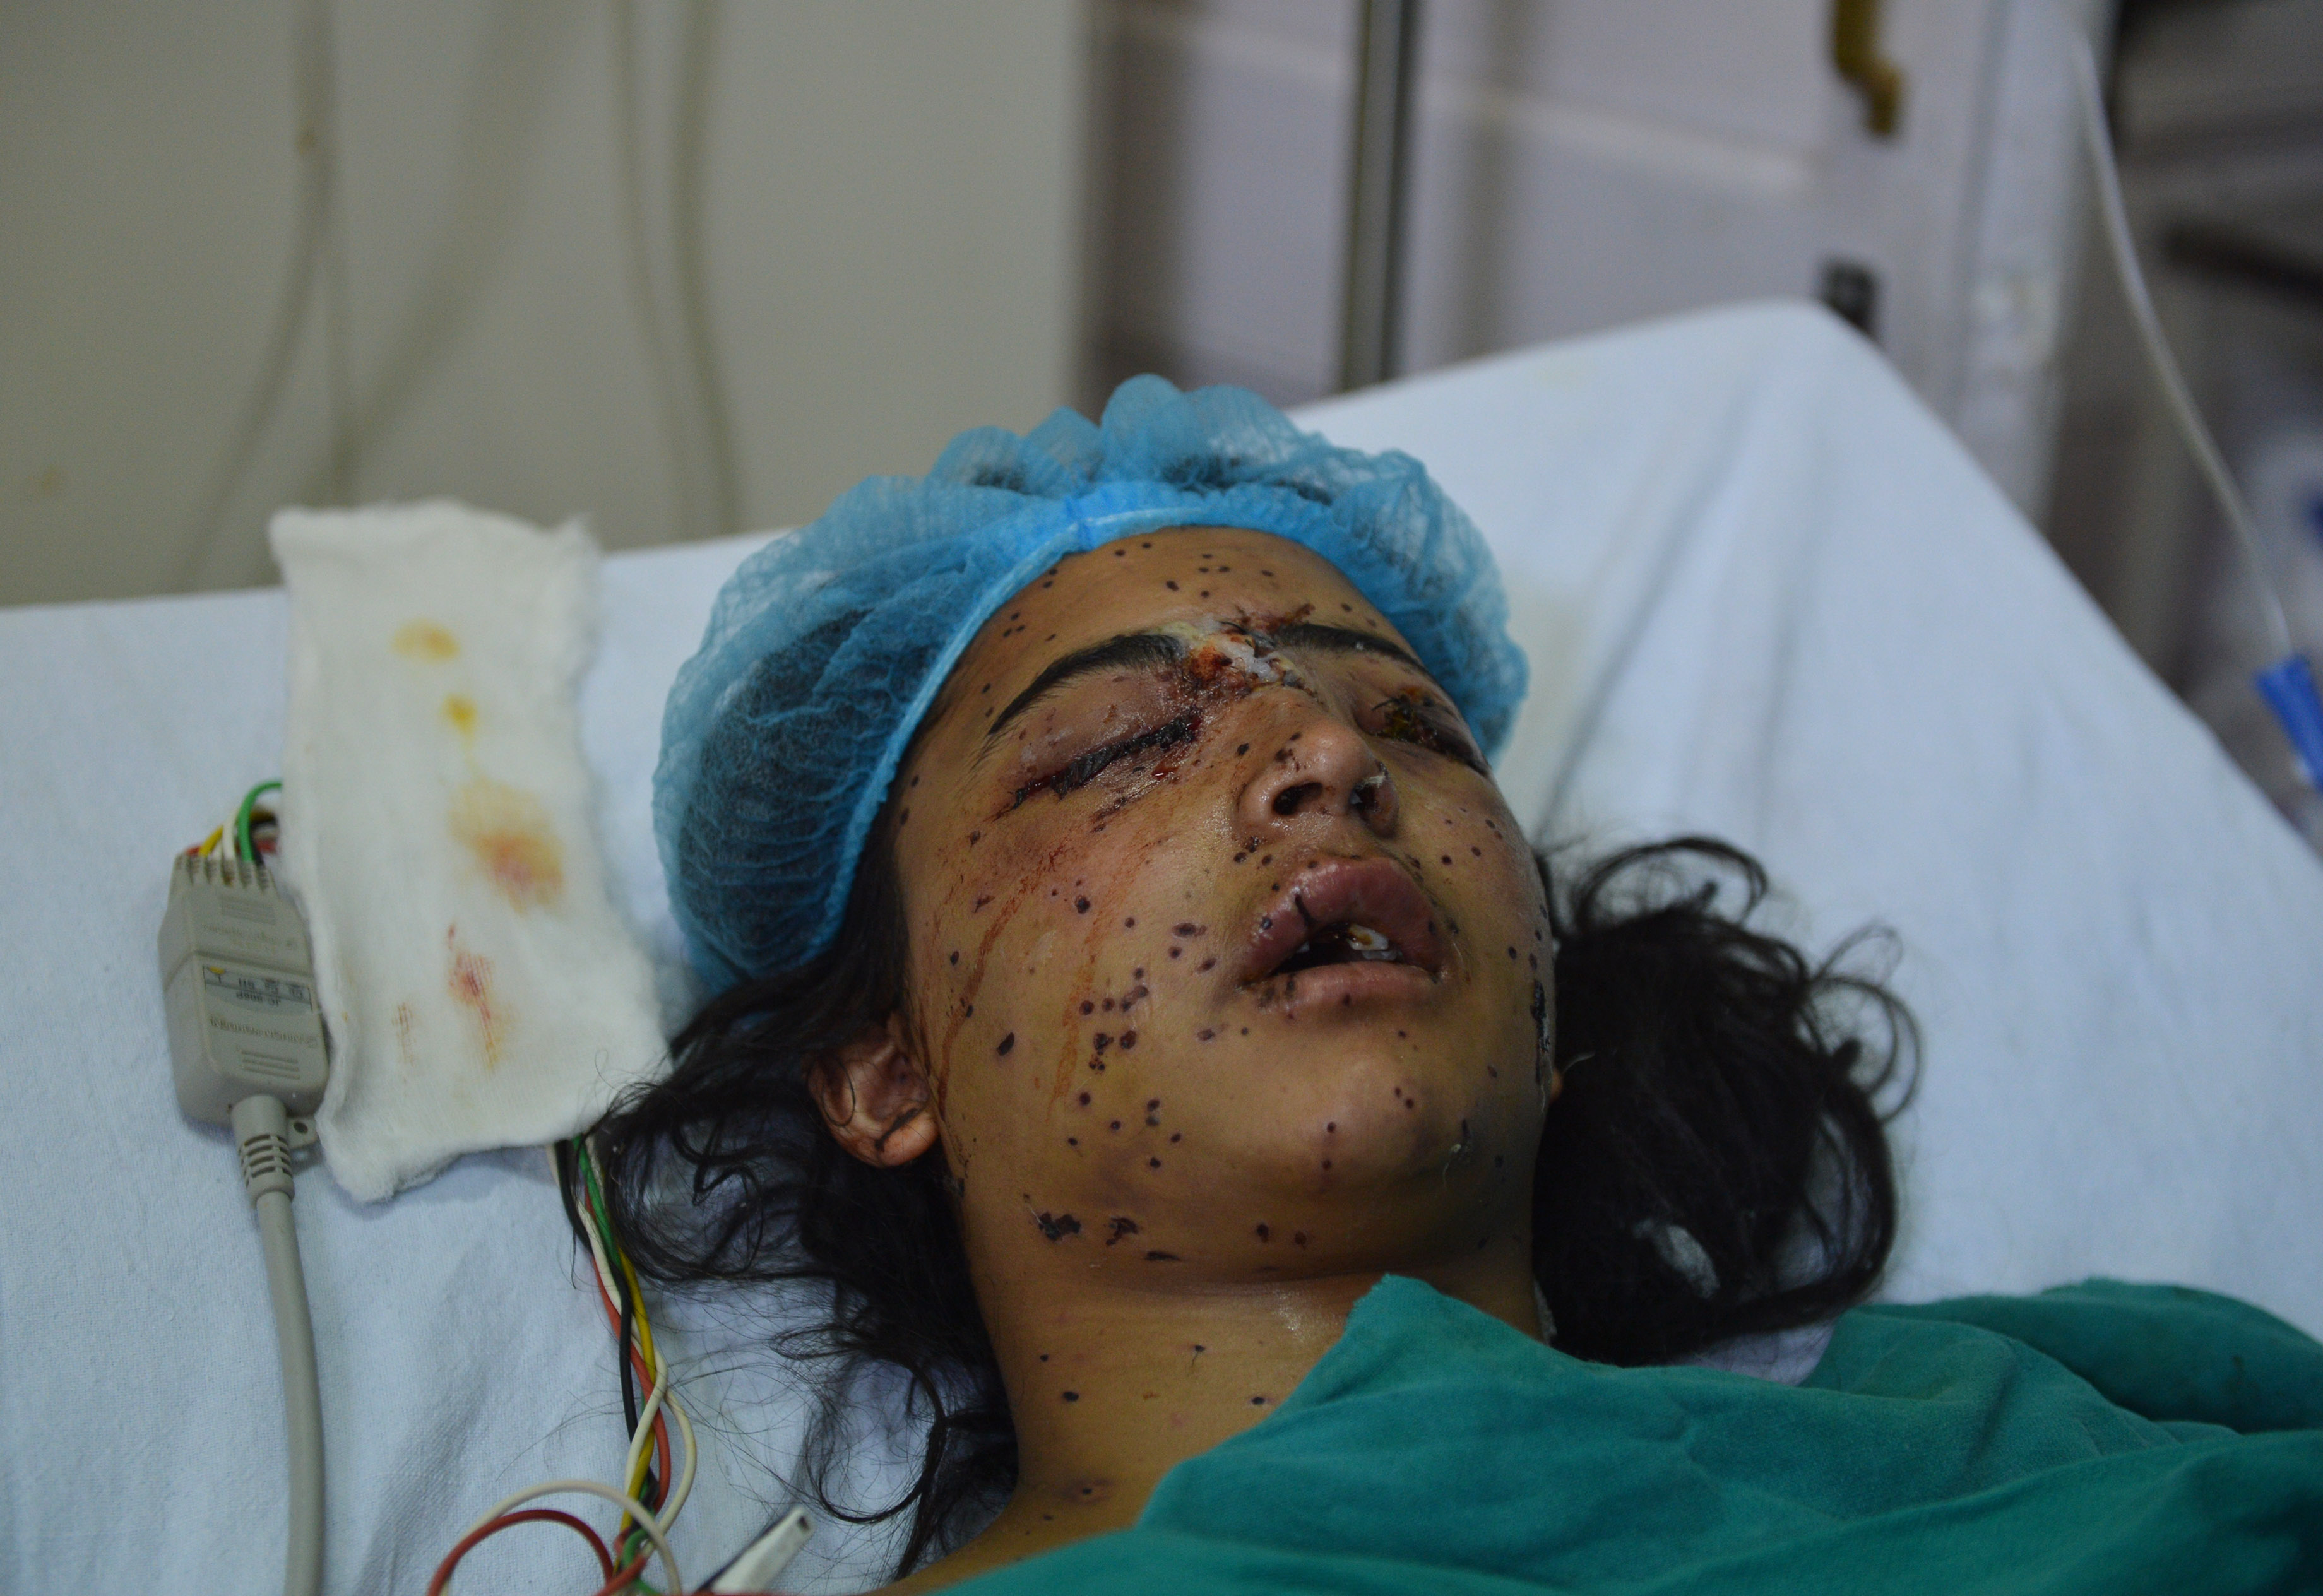 Insha Malik, 14, was blinded after being hit by pellets fired by Indian security forces in 2016. Photo credit: AFP